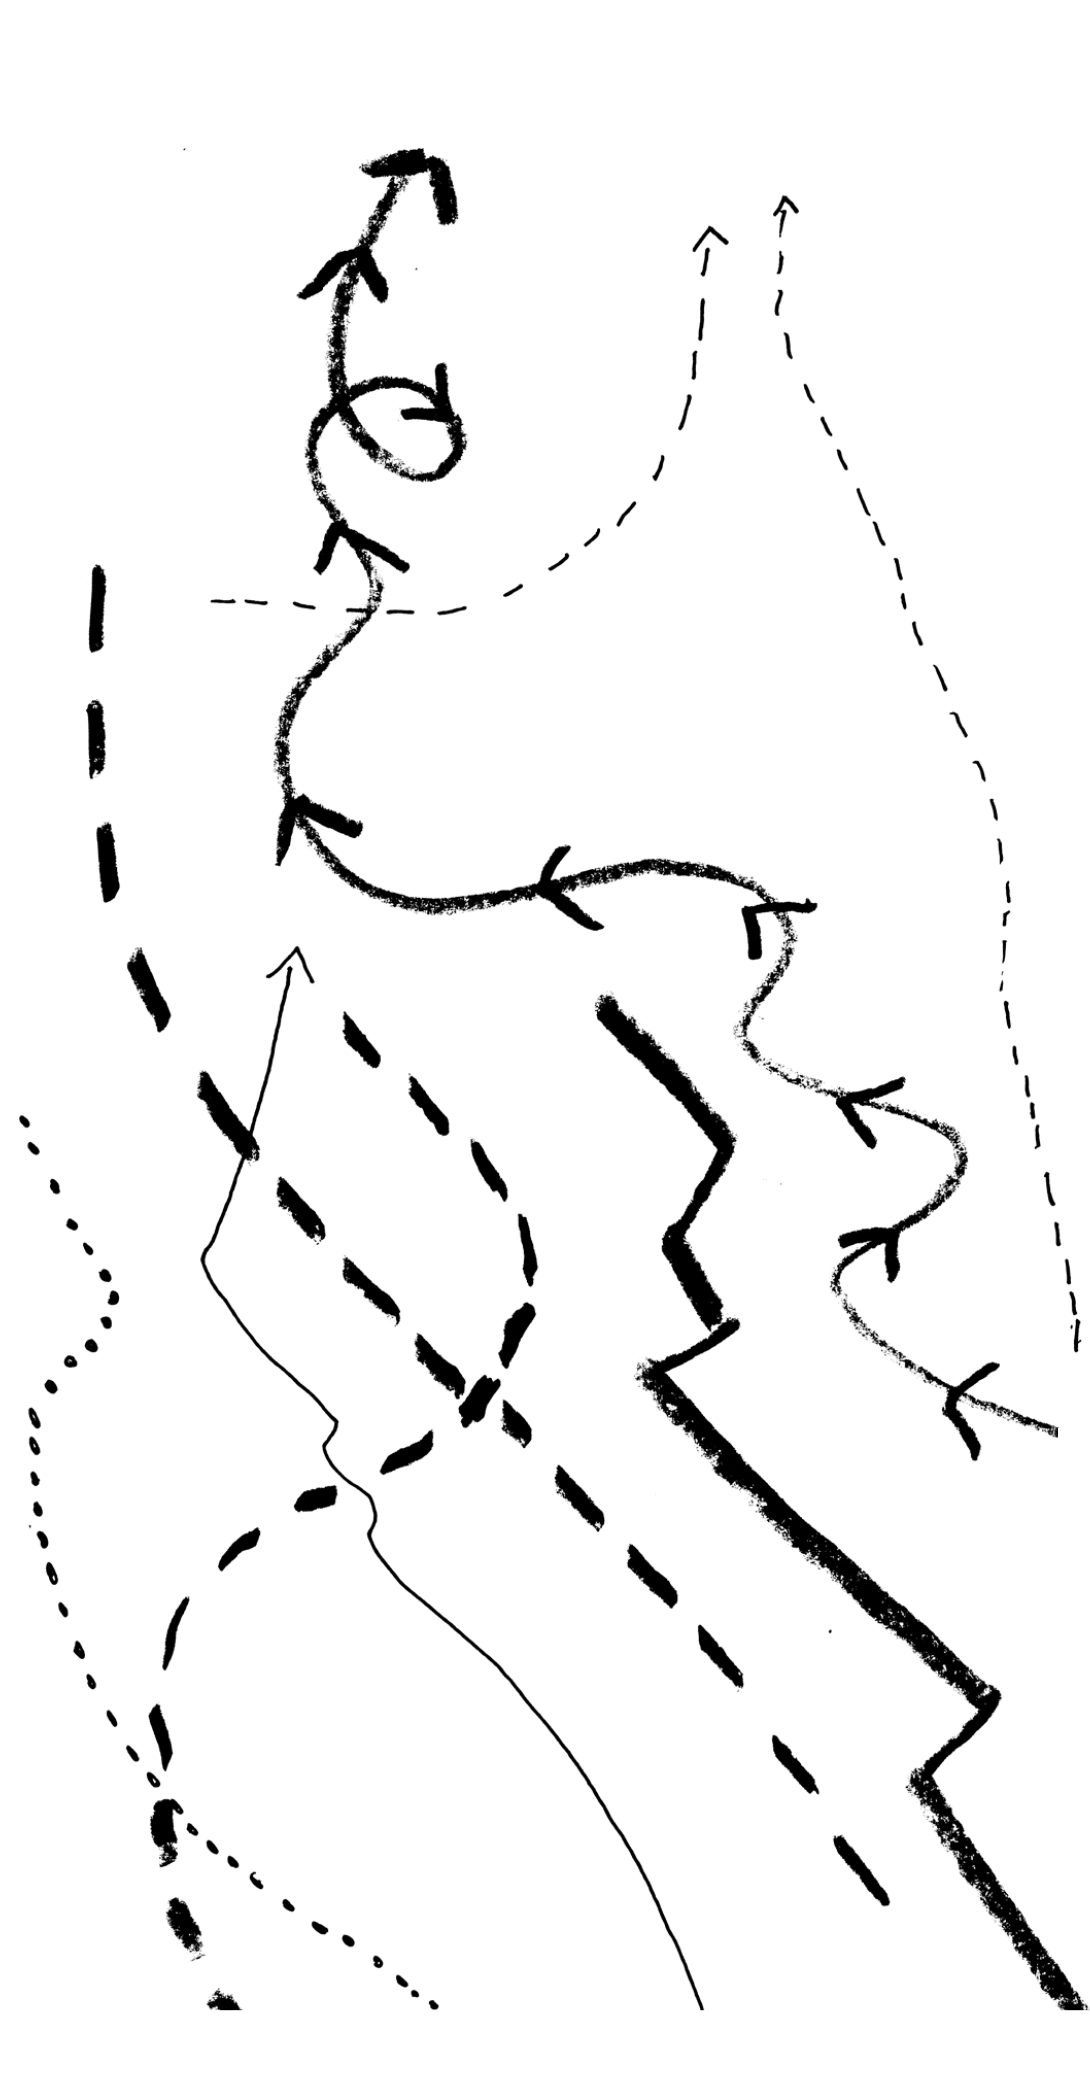 book-4-map-of-me-feature-image(1)